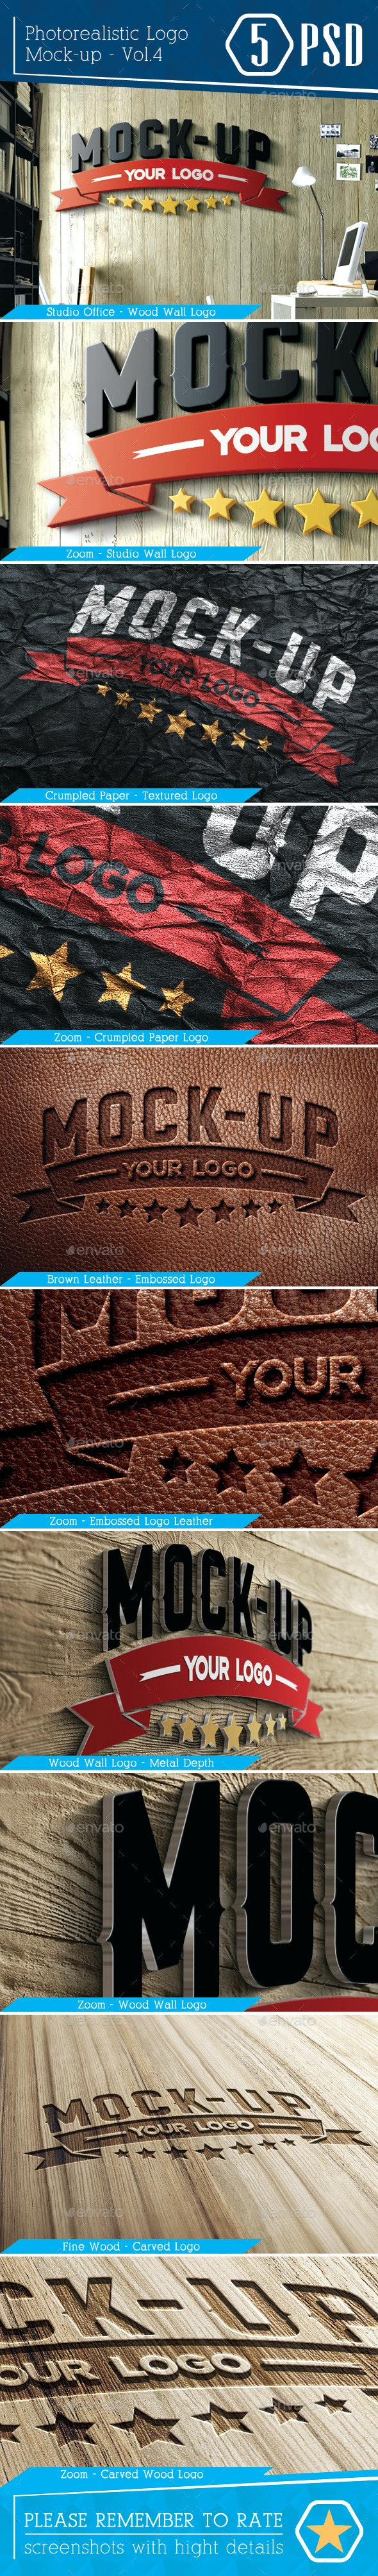 Photorealistic Logo Mock-Up Vol.4 - Logo Product Mock-Ups